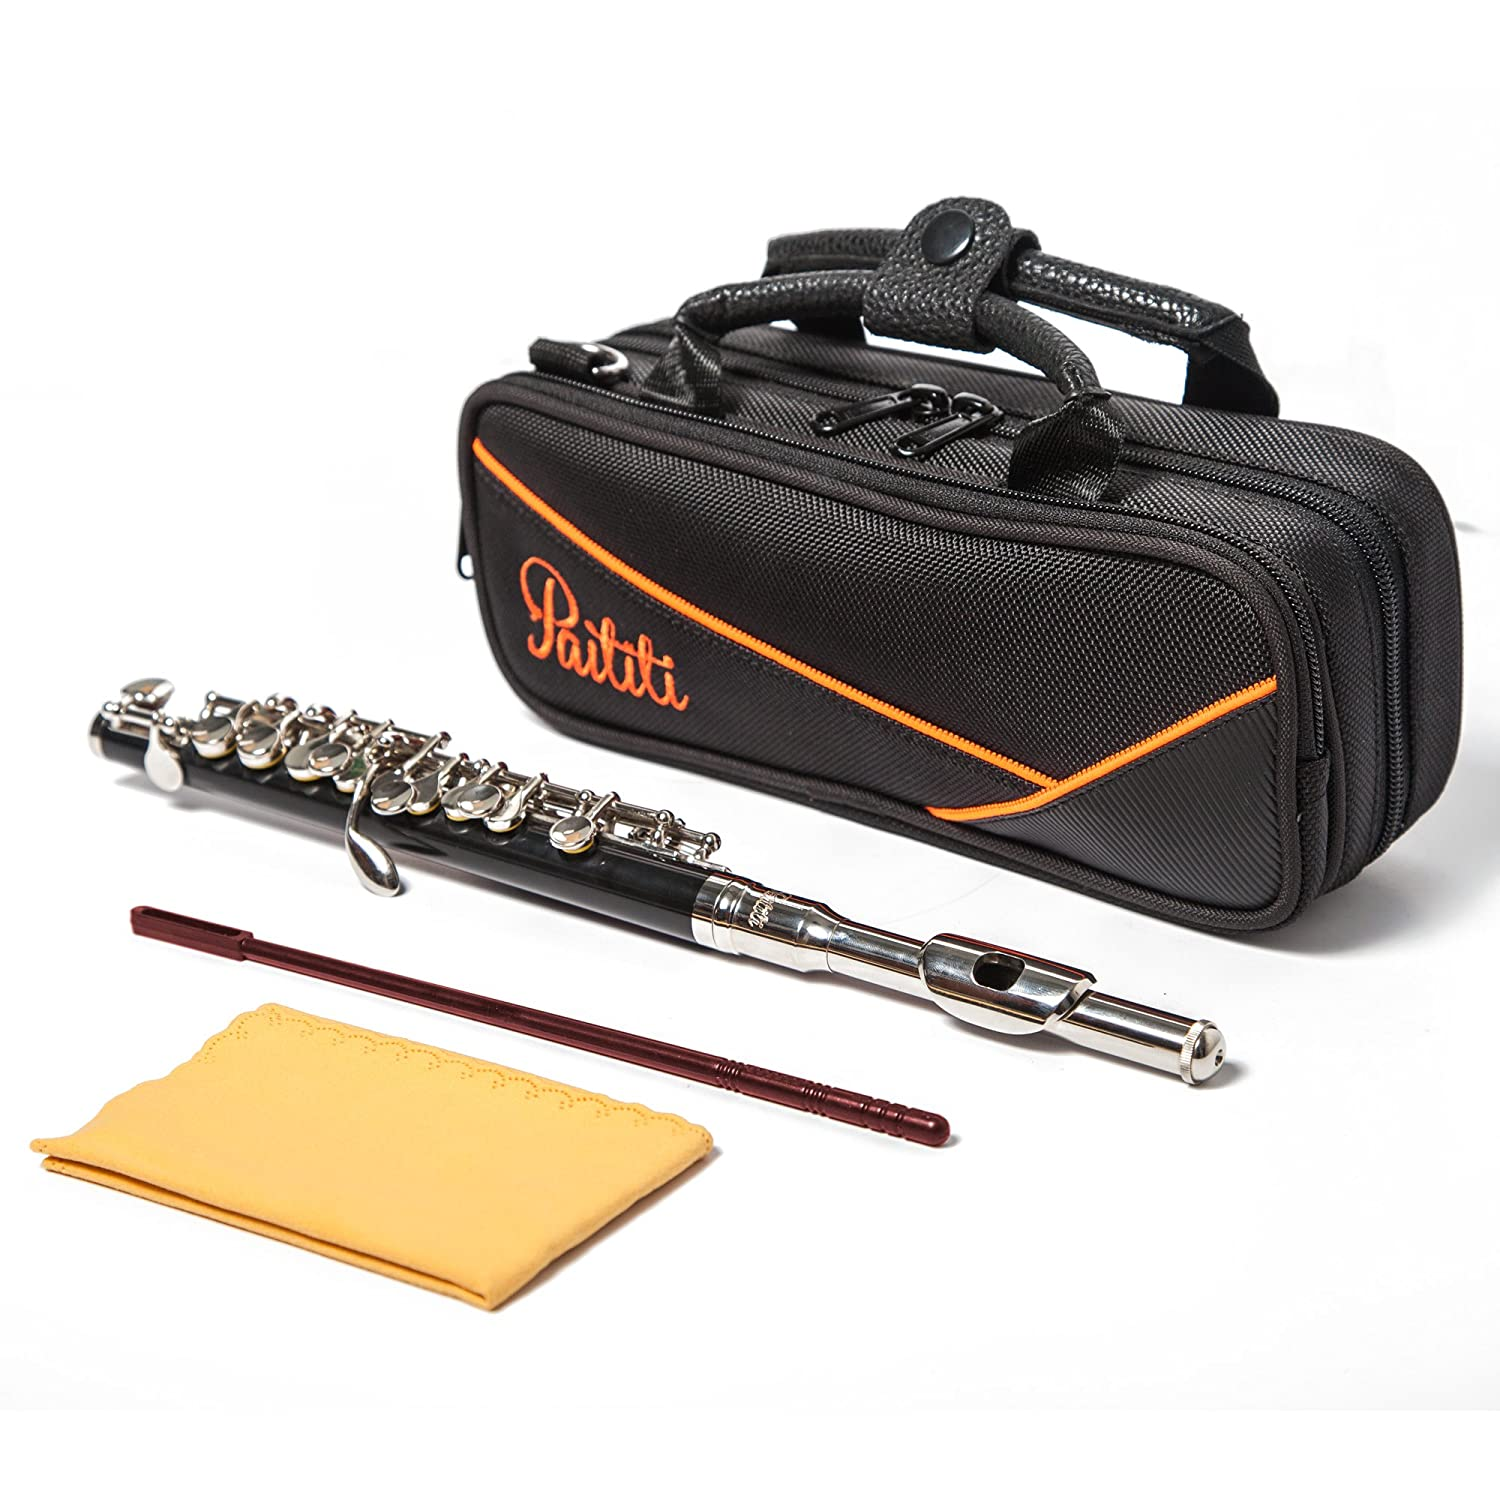 Paititi Professional Centertone Composite Wood Piccolo Flute Silver Plated Head Joint Ebonite Composite Wood Body with Case PTTPC201-EW